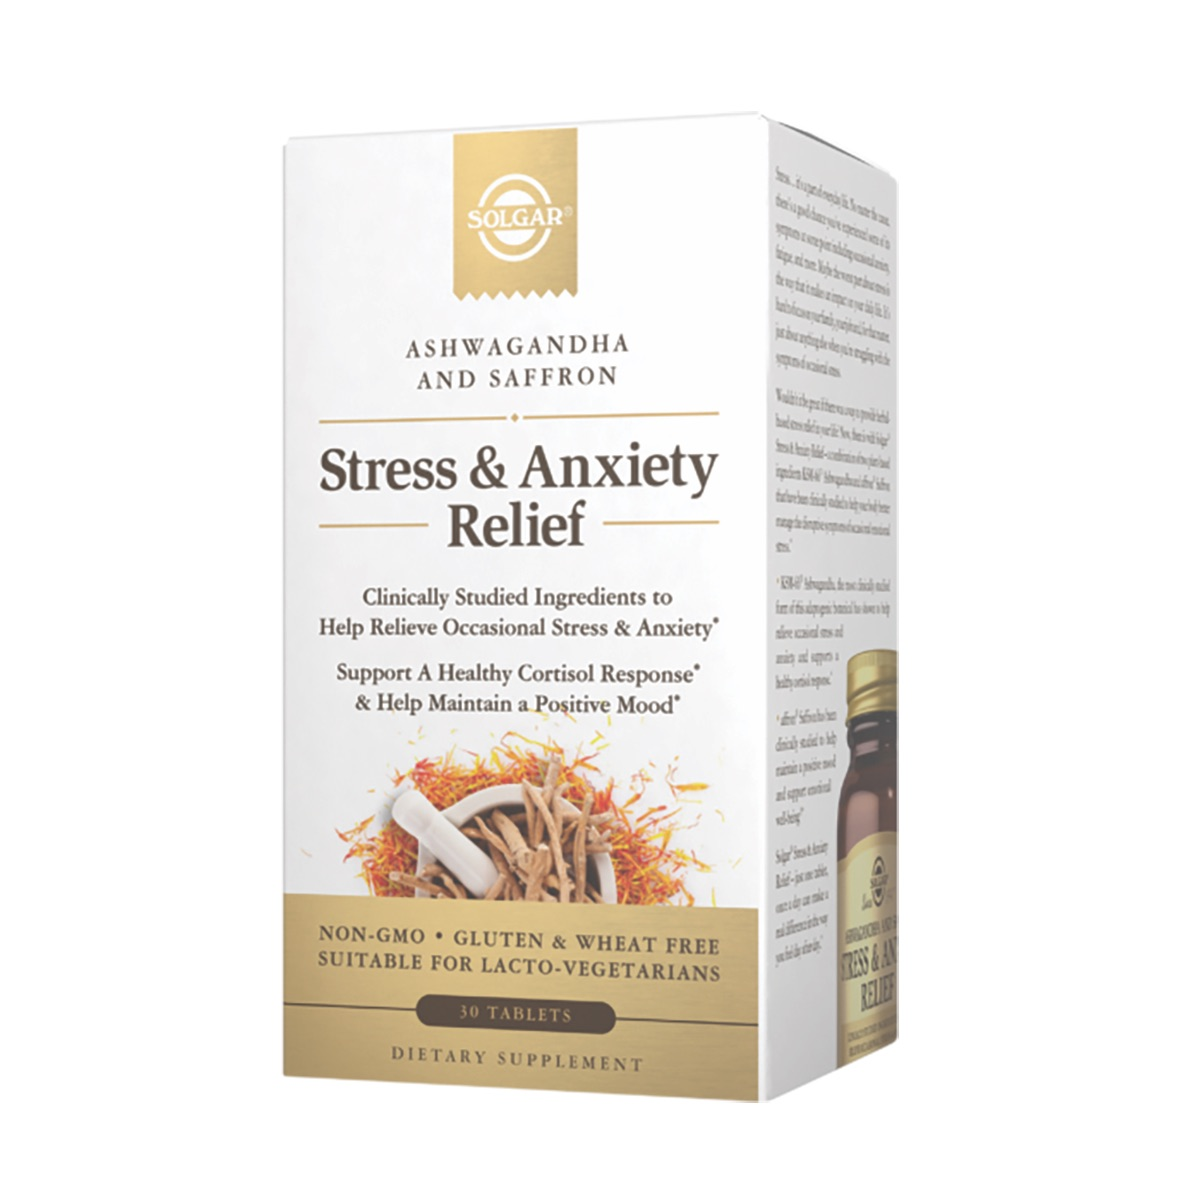 Stress & Anxiety Relief Tablets | WholeFoods Magazine